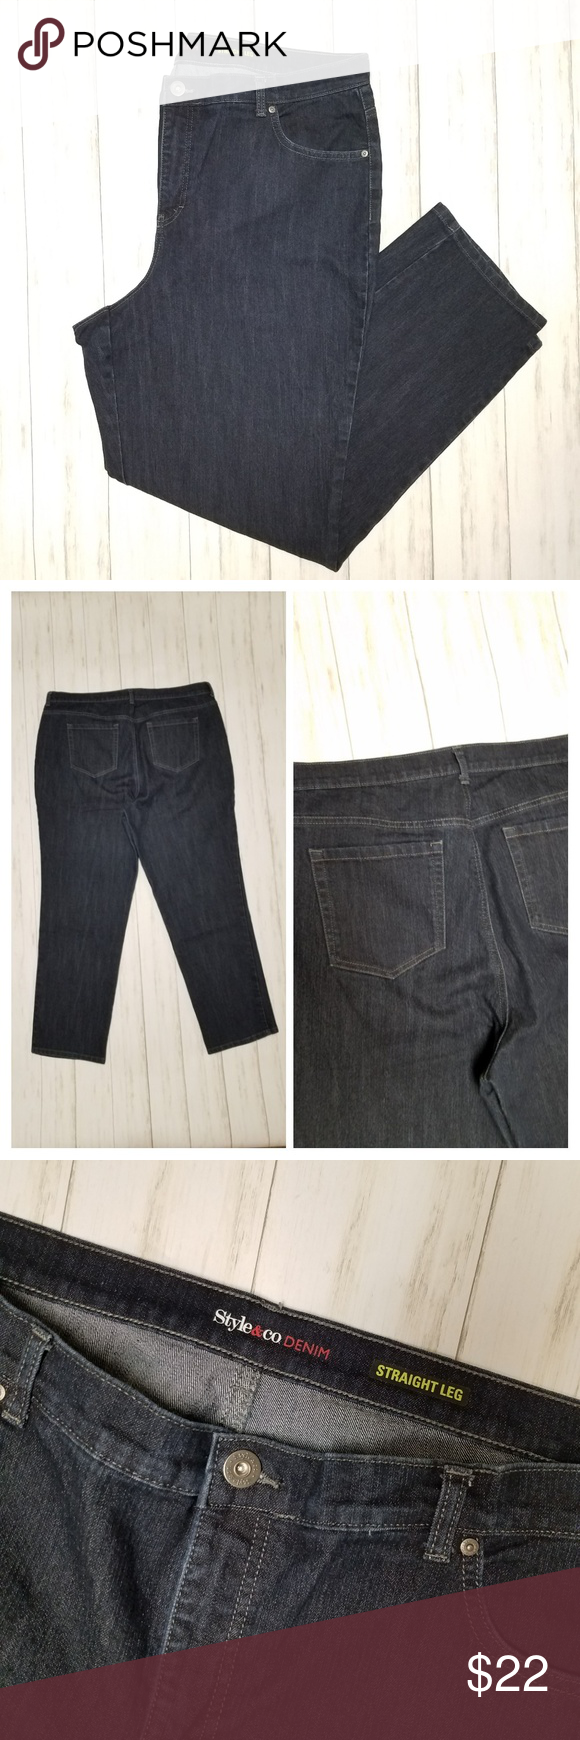 4dff09f37f53b Style   Co. Denim straight leg jeans sz 18W Style   Co. Denim straight leg  dark wash jeans sz 18W 29